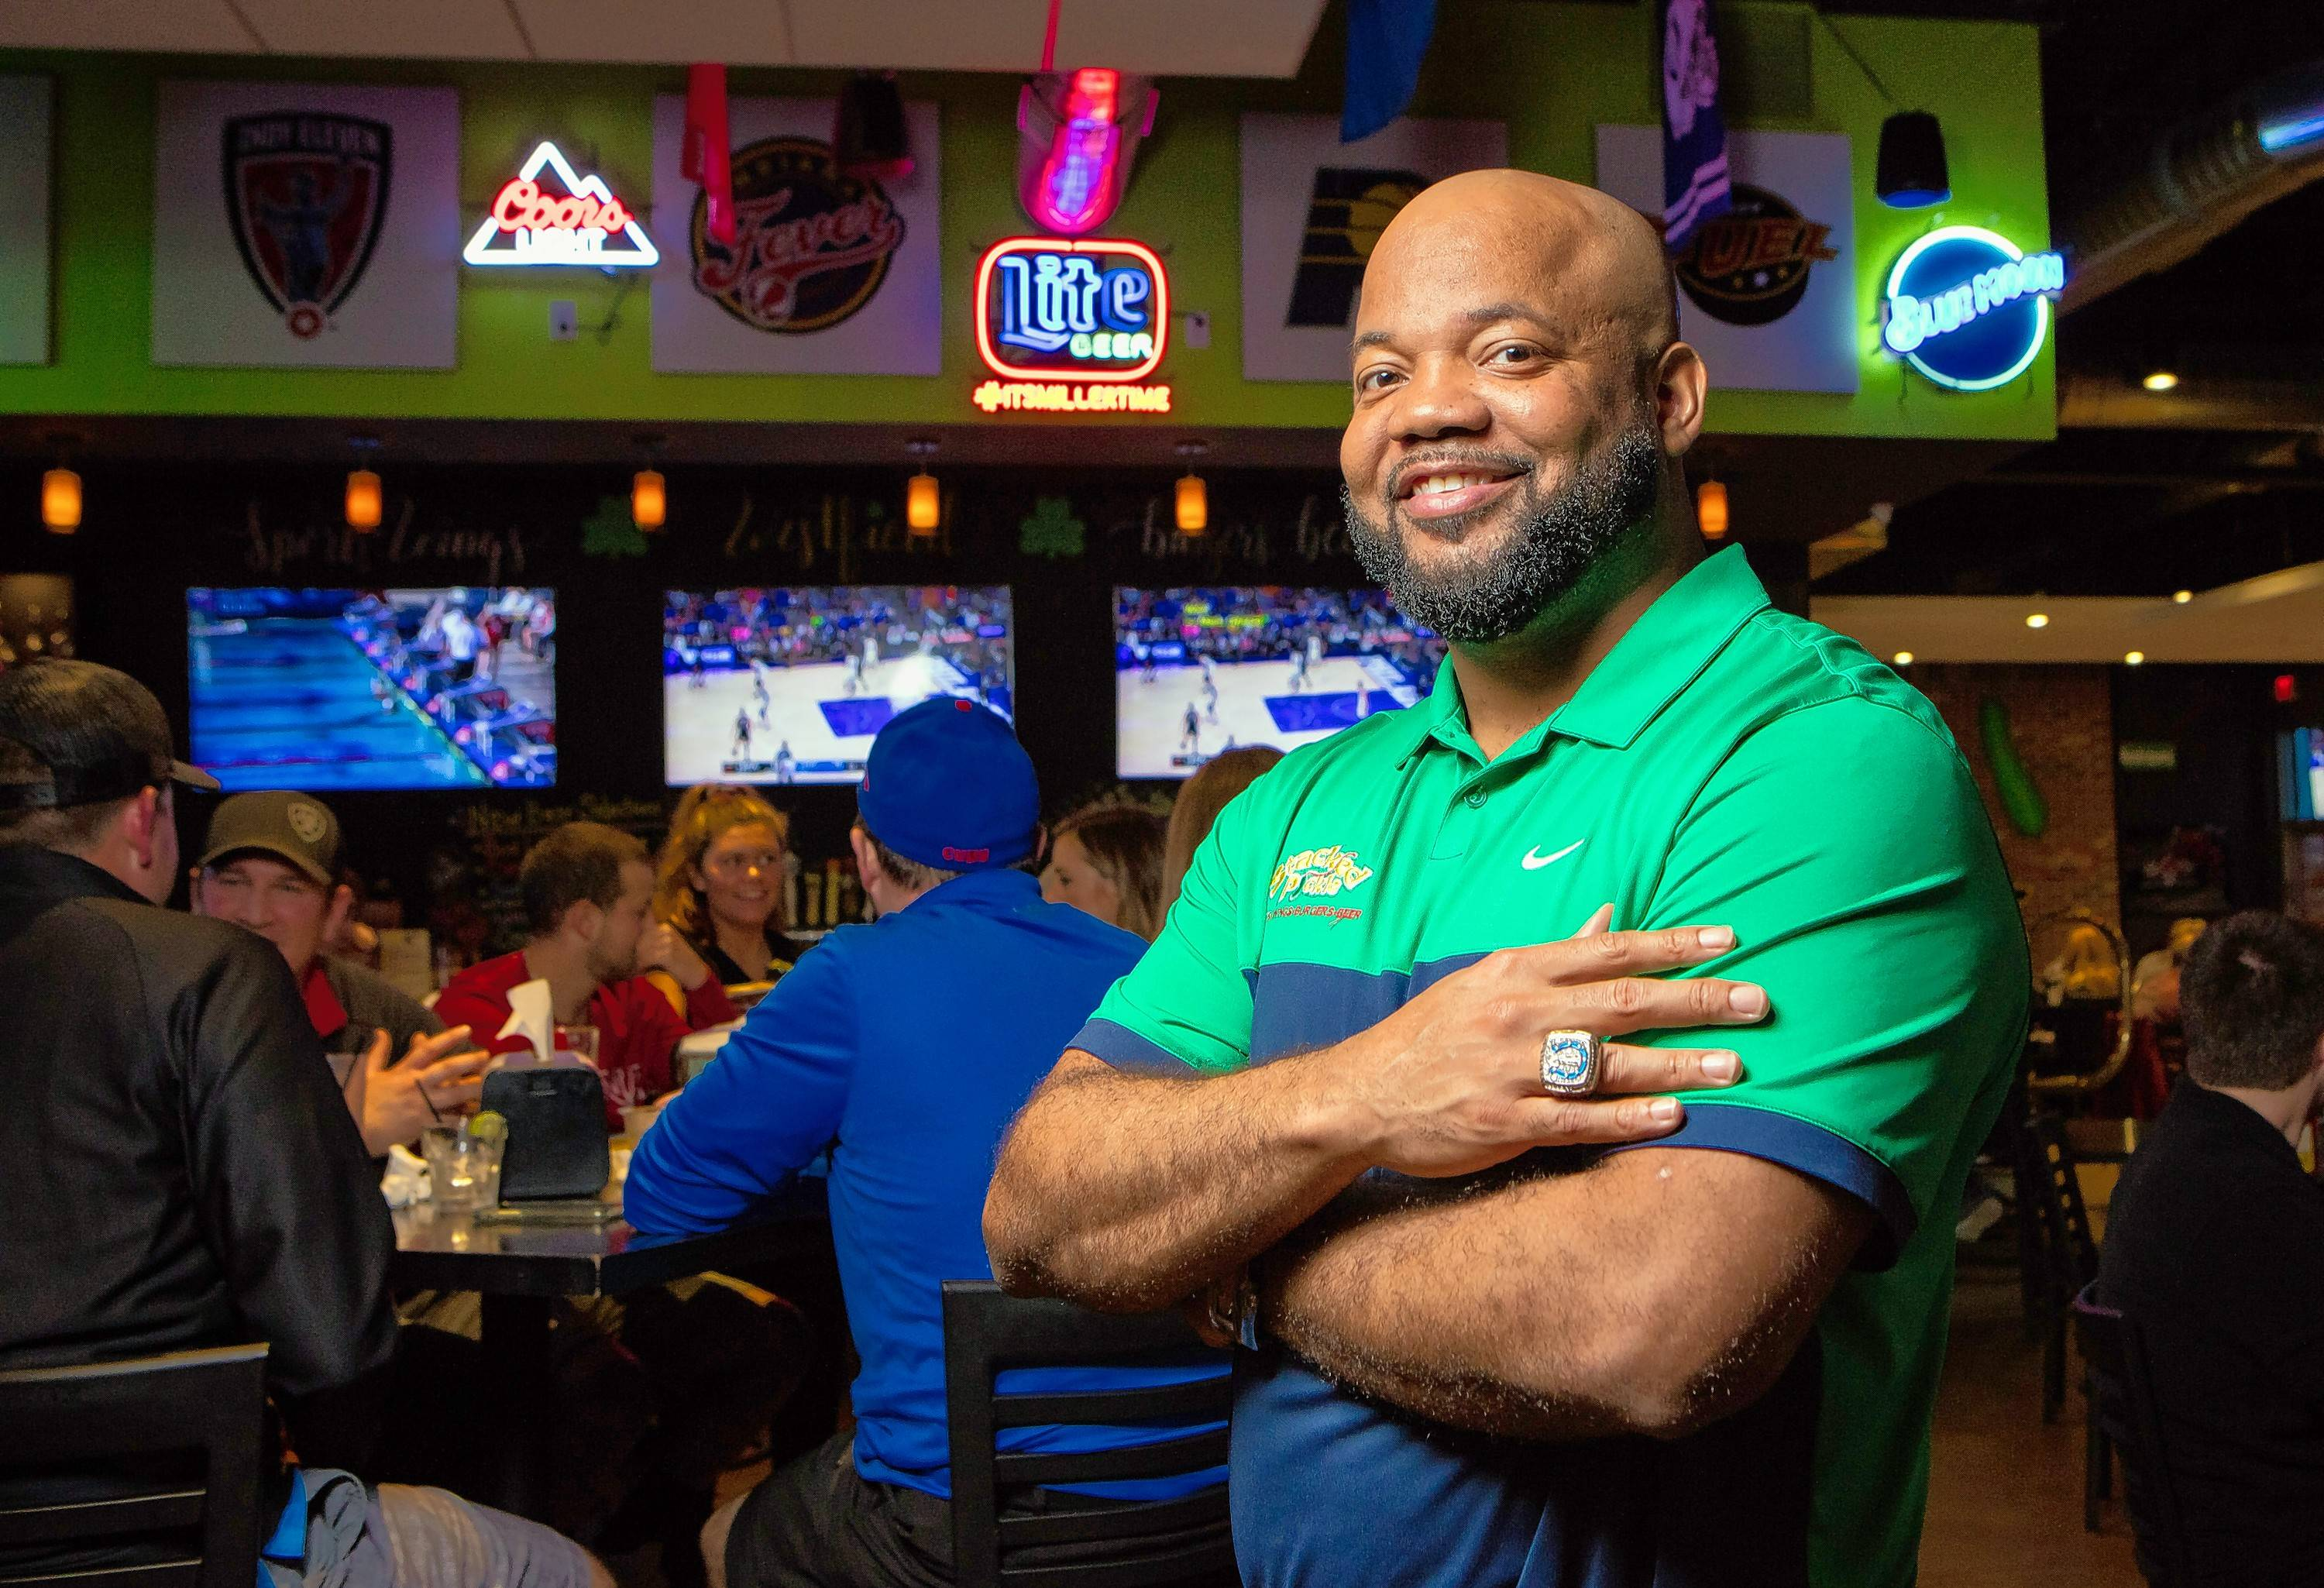 Indiana sports bar chain considers Elk Grove after Bahamas Bowl sponsorship